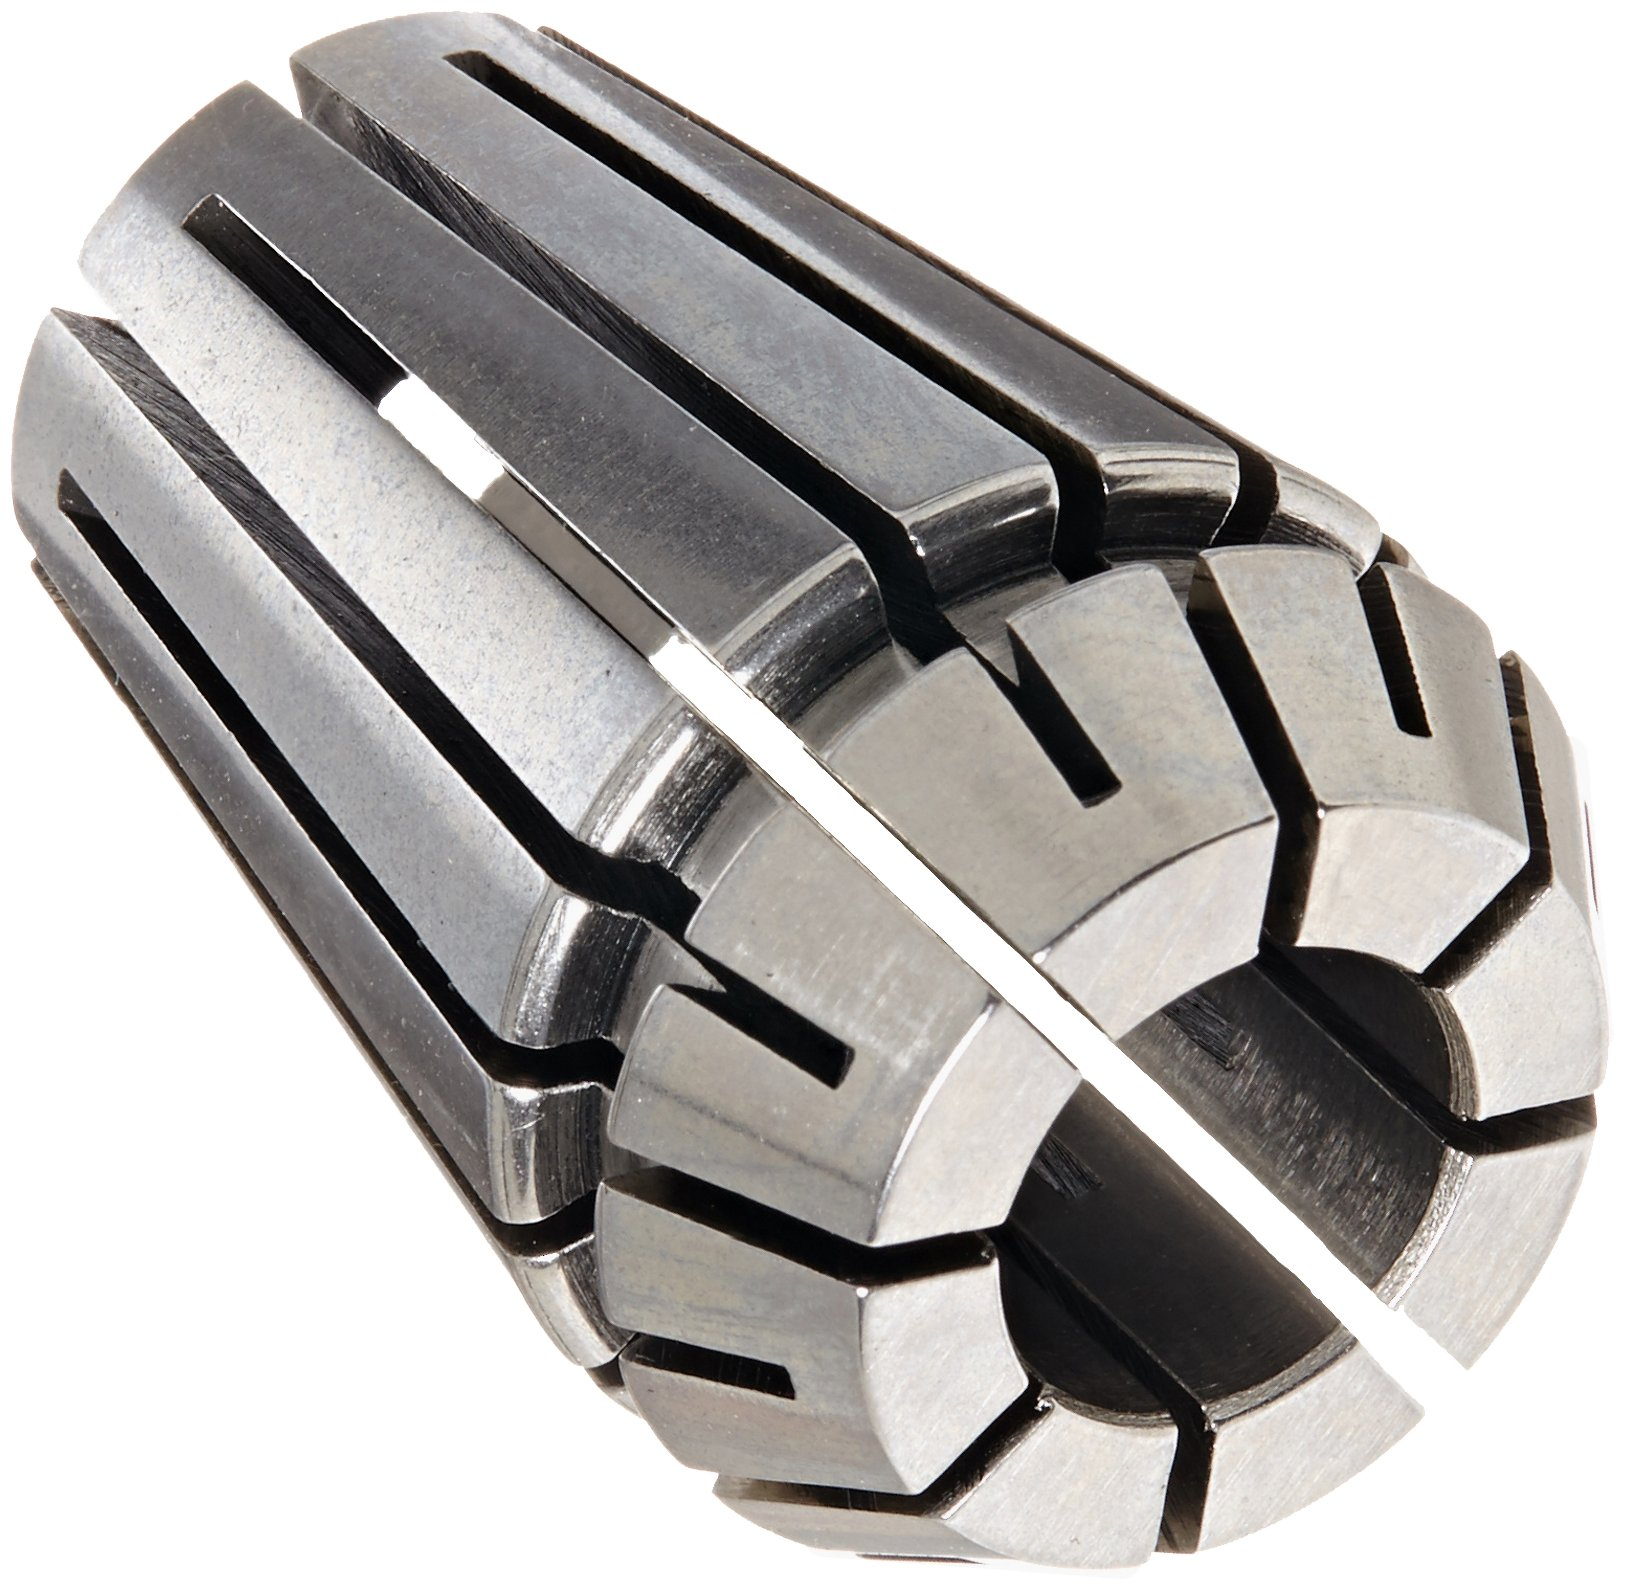 Dorian Tool ER20 Alloy Steel Ultra Precision Collet, 0.355'' - 0.375'' Hole Size